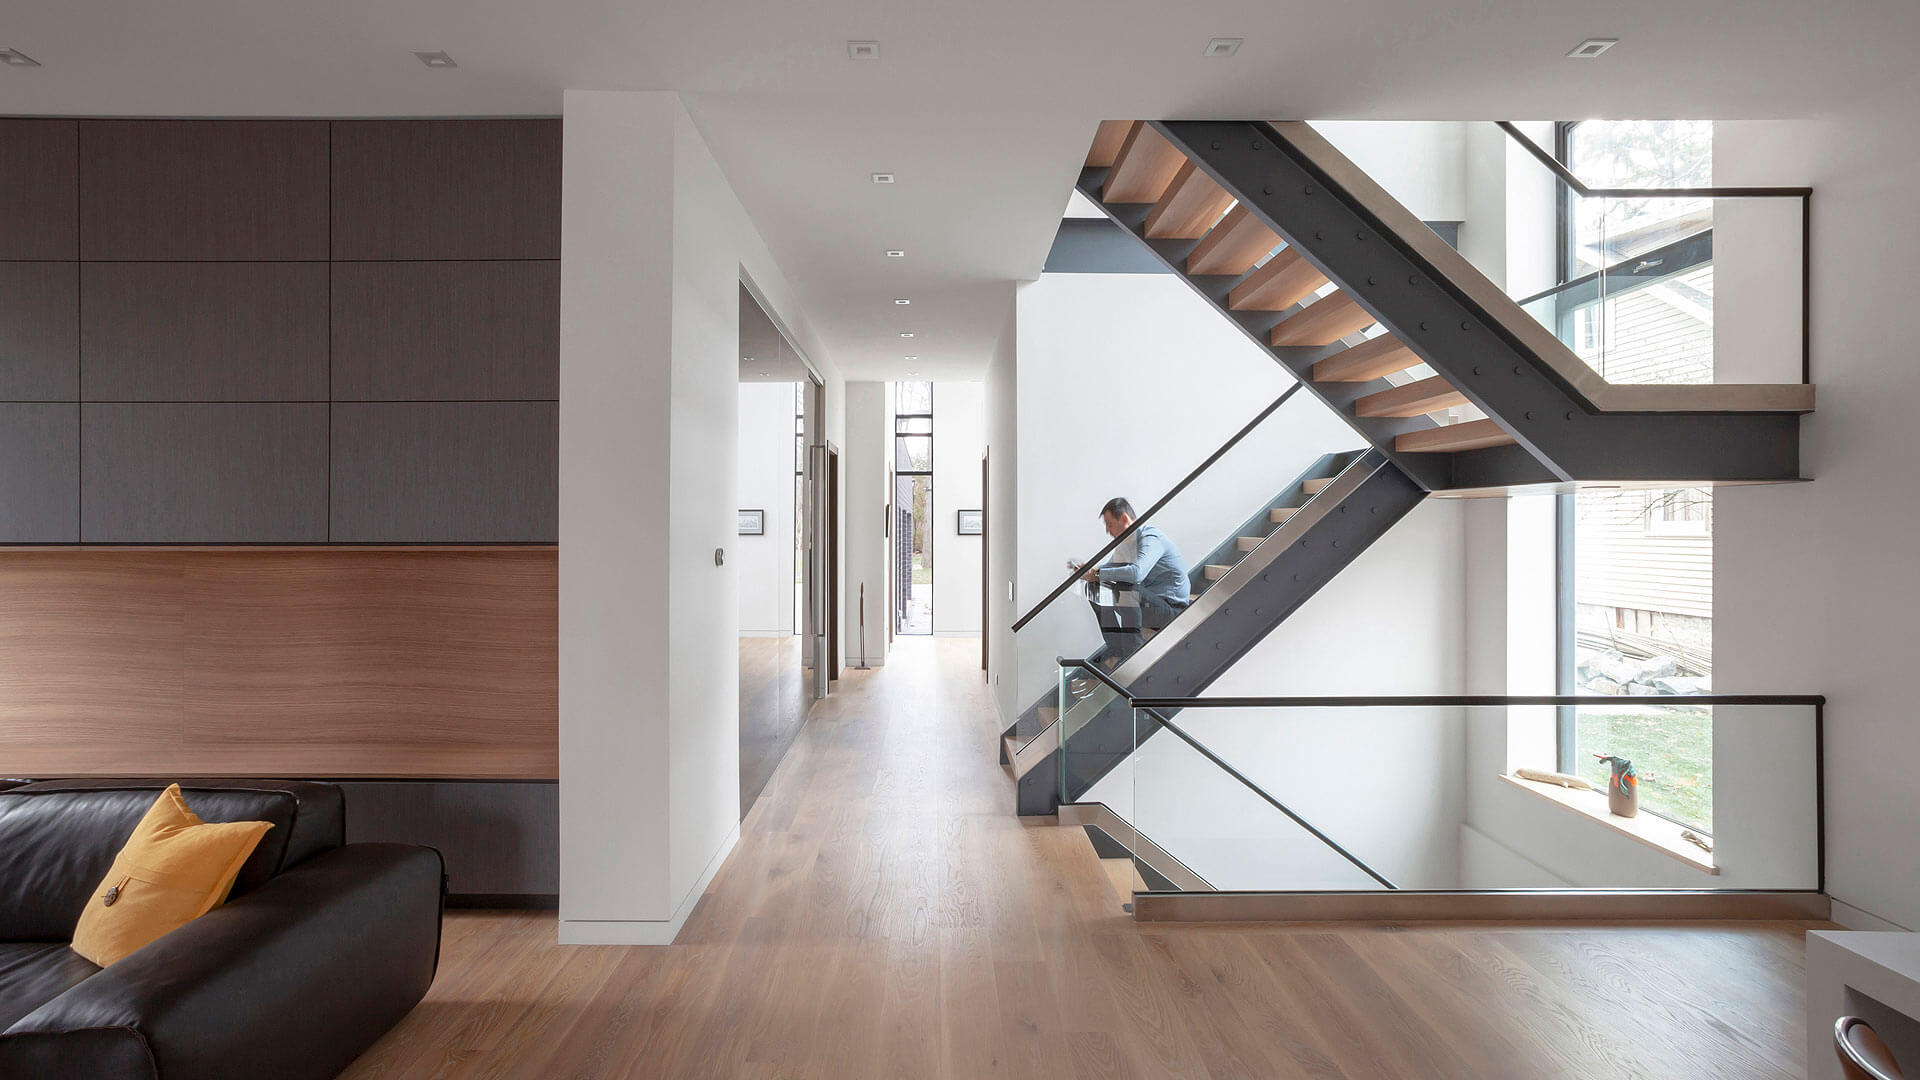 Industrial stair floats at main level adjacent to kitchen - Minimalist Modern - Indian Head Park - Chicago, Illinois - HAUS | Architecture For Modern Lifestyles, Christopher Short, Indianapolis Architect with Joe Trojanowski